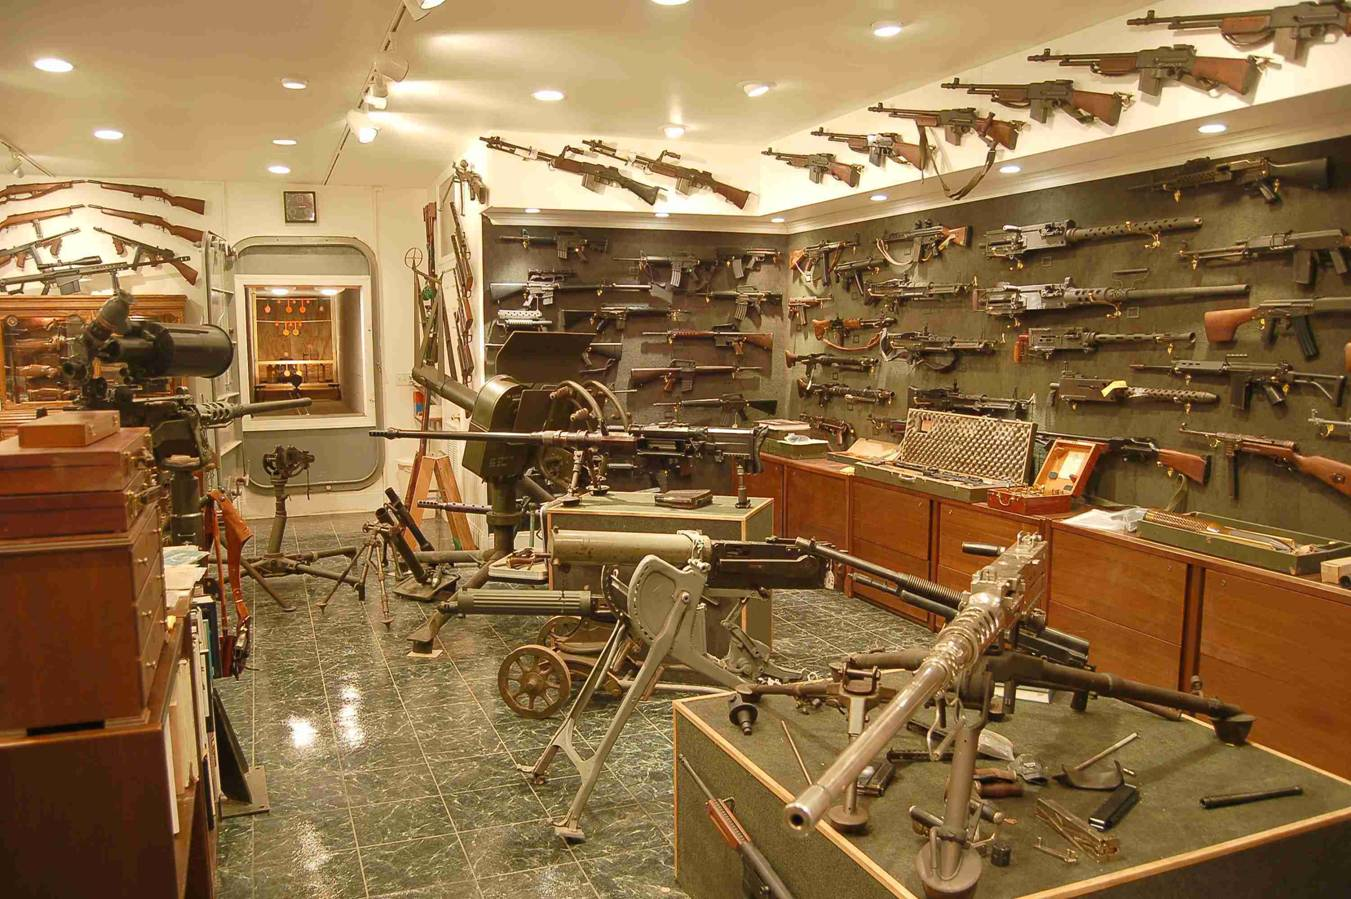 Gun room amp trophy room done hunting - View Attachment 21446